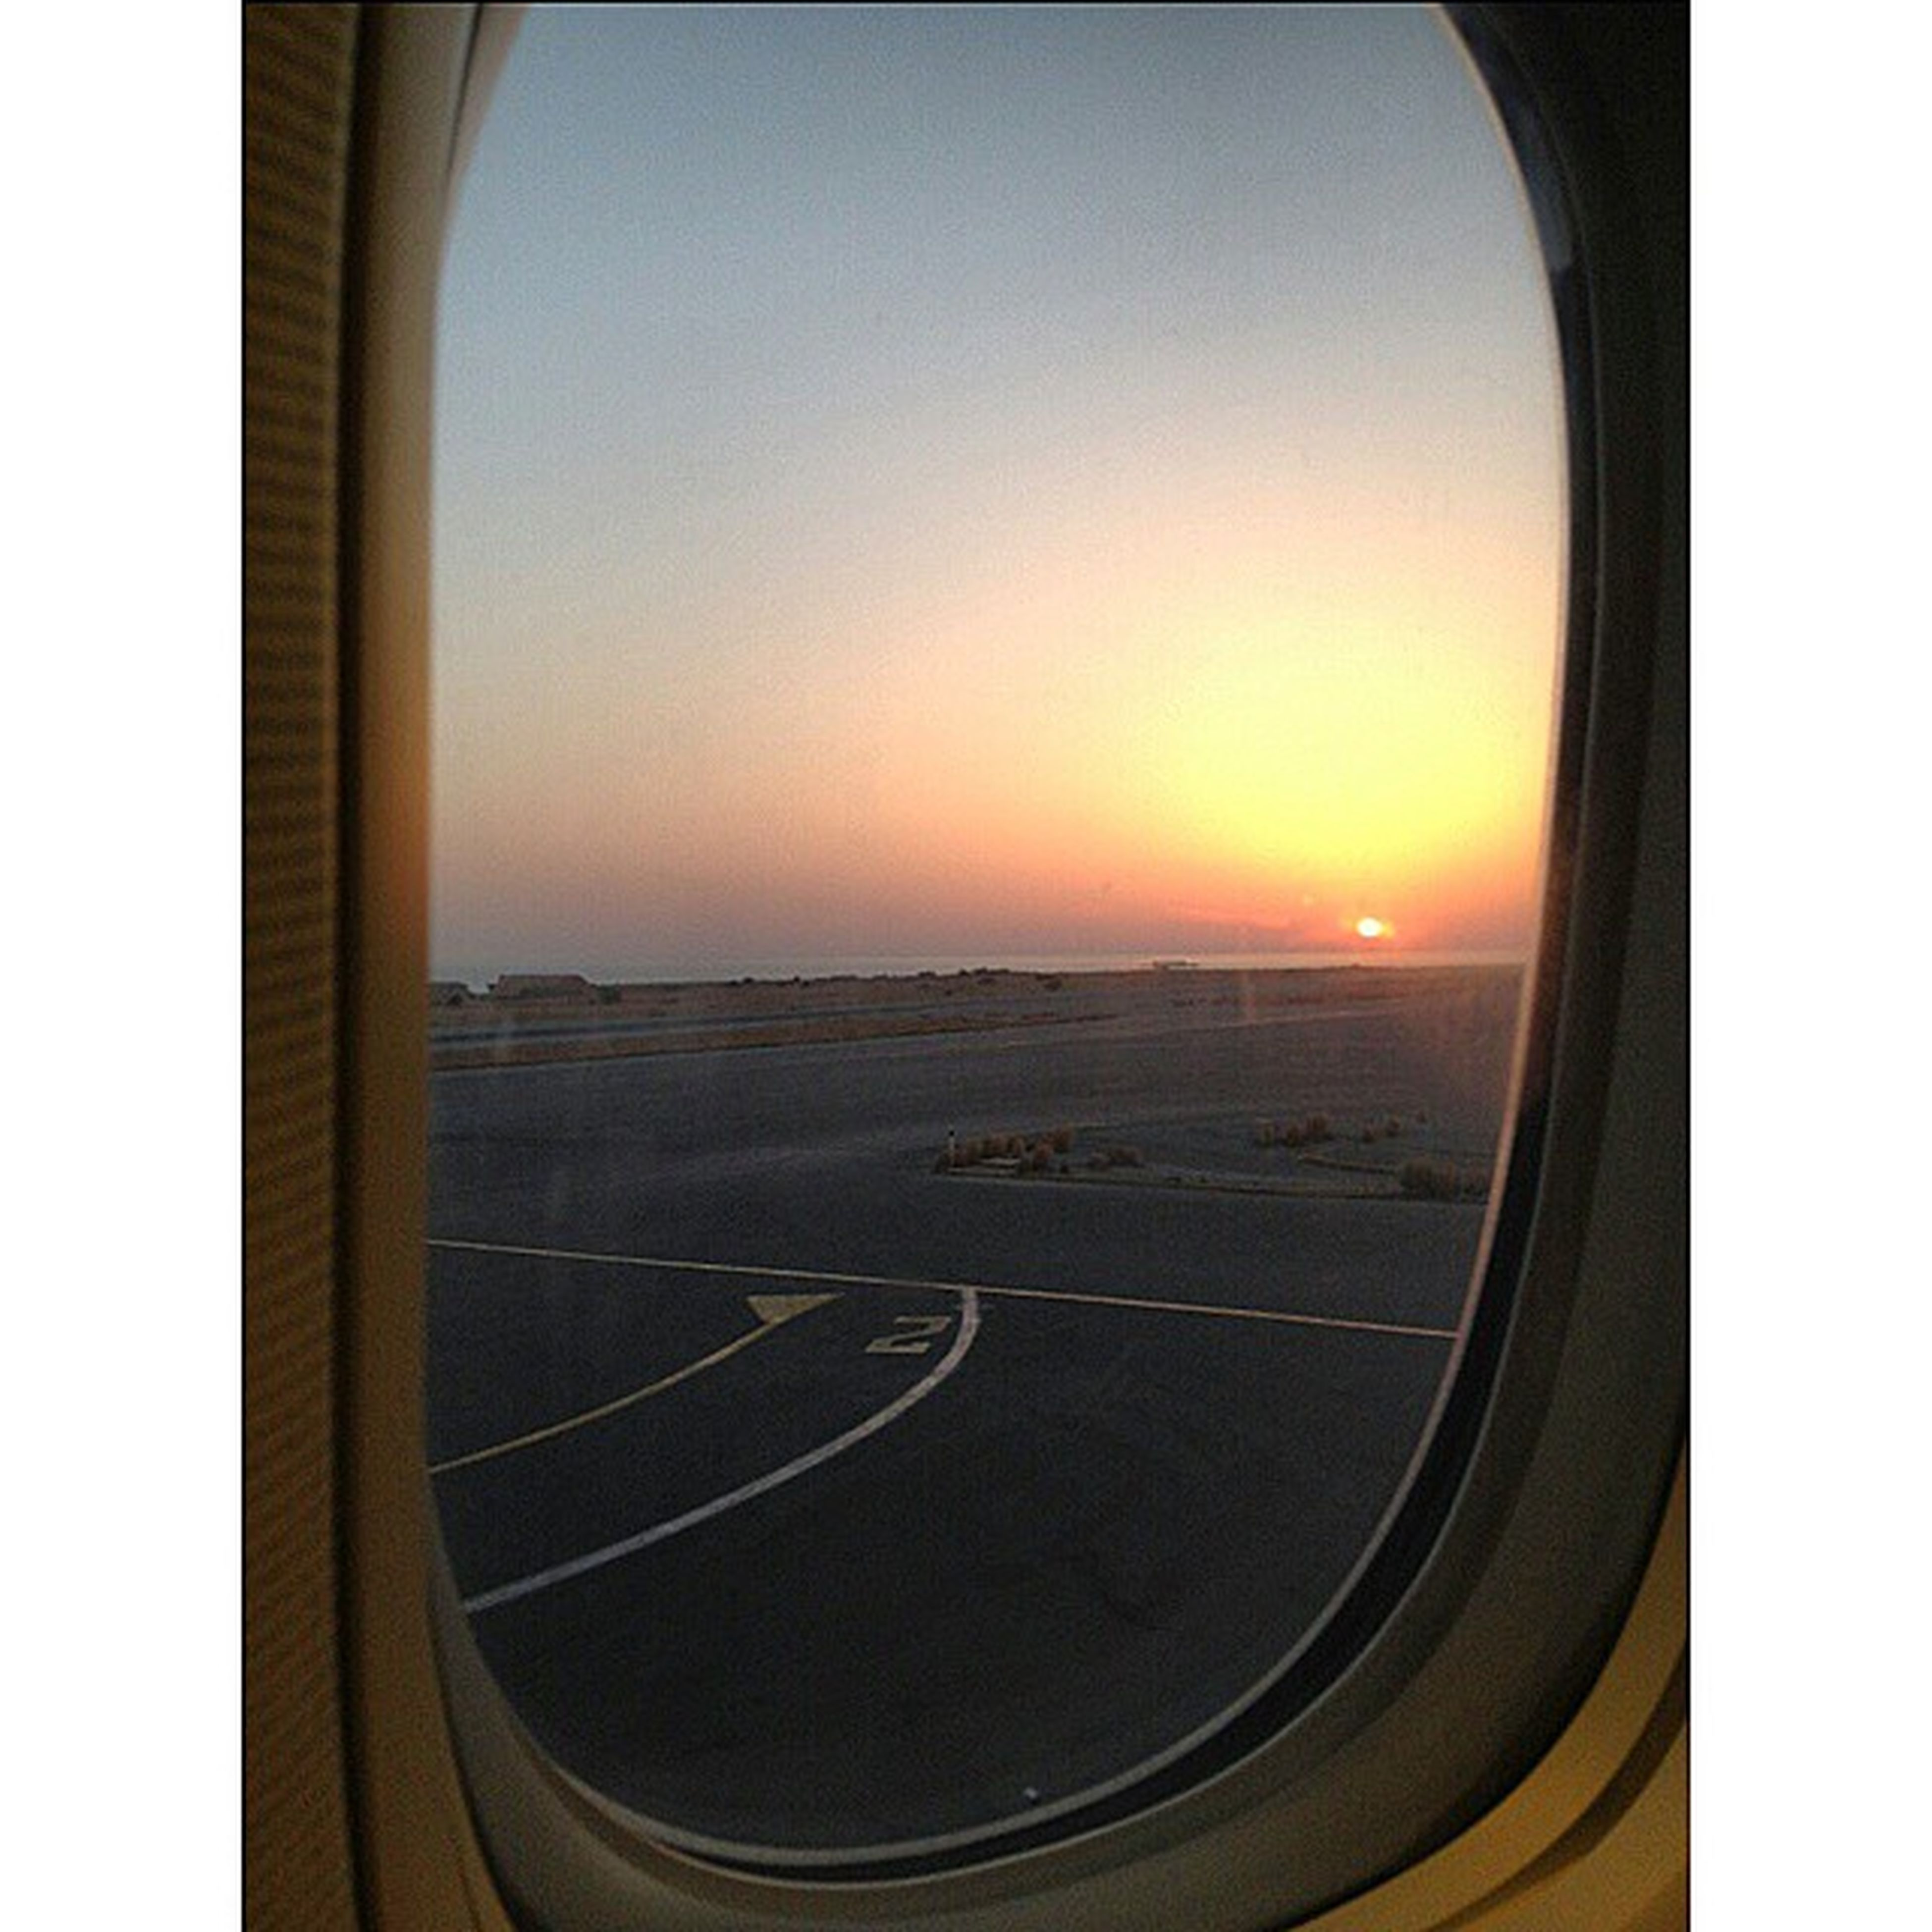 sunset, transportation, orange color, sun, clear sky, scenics, mode of transport, window, vehicle interior, copy space, beauty in nature, airplane, glass - material, sky, transparent, nature, travel, tranquility, tranquil scene, sea